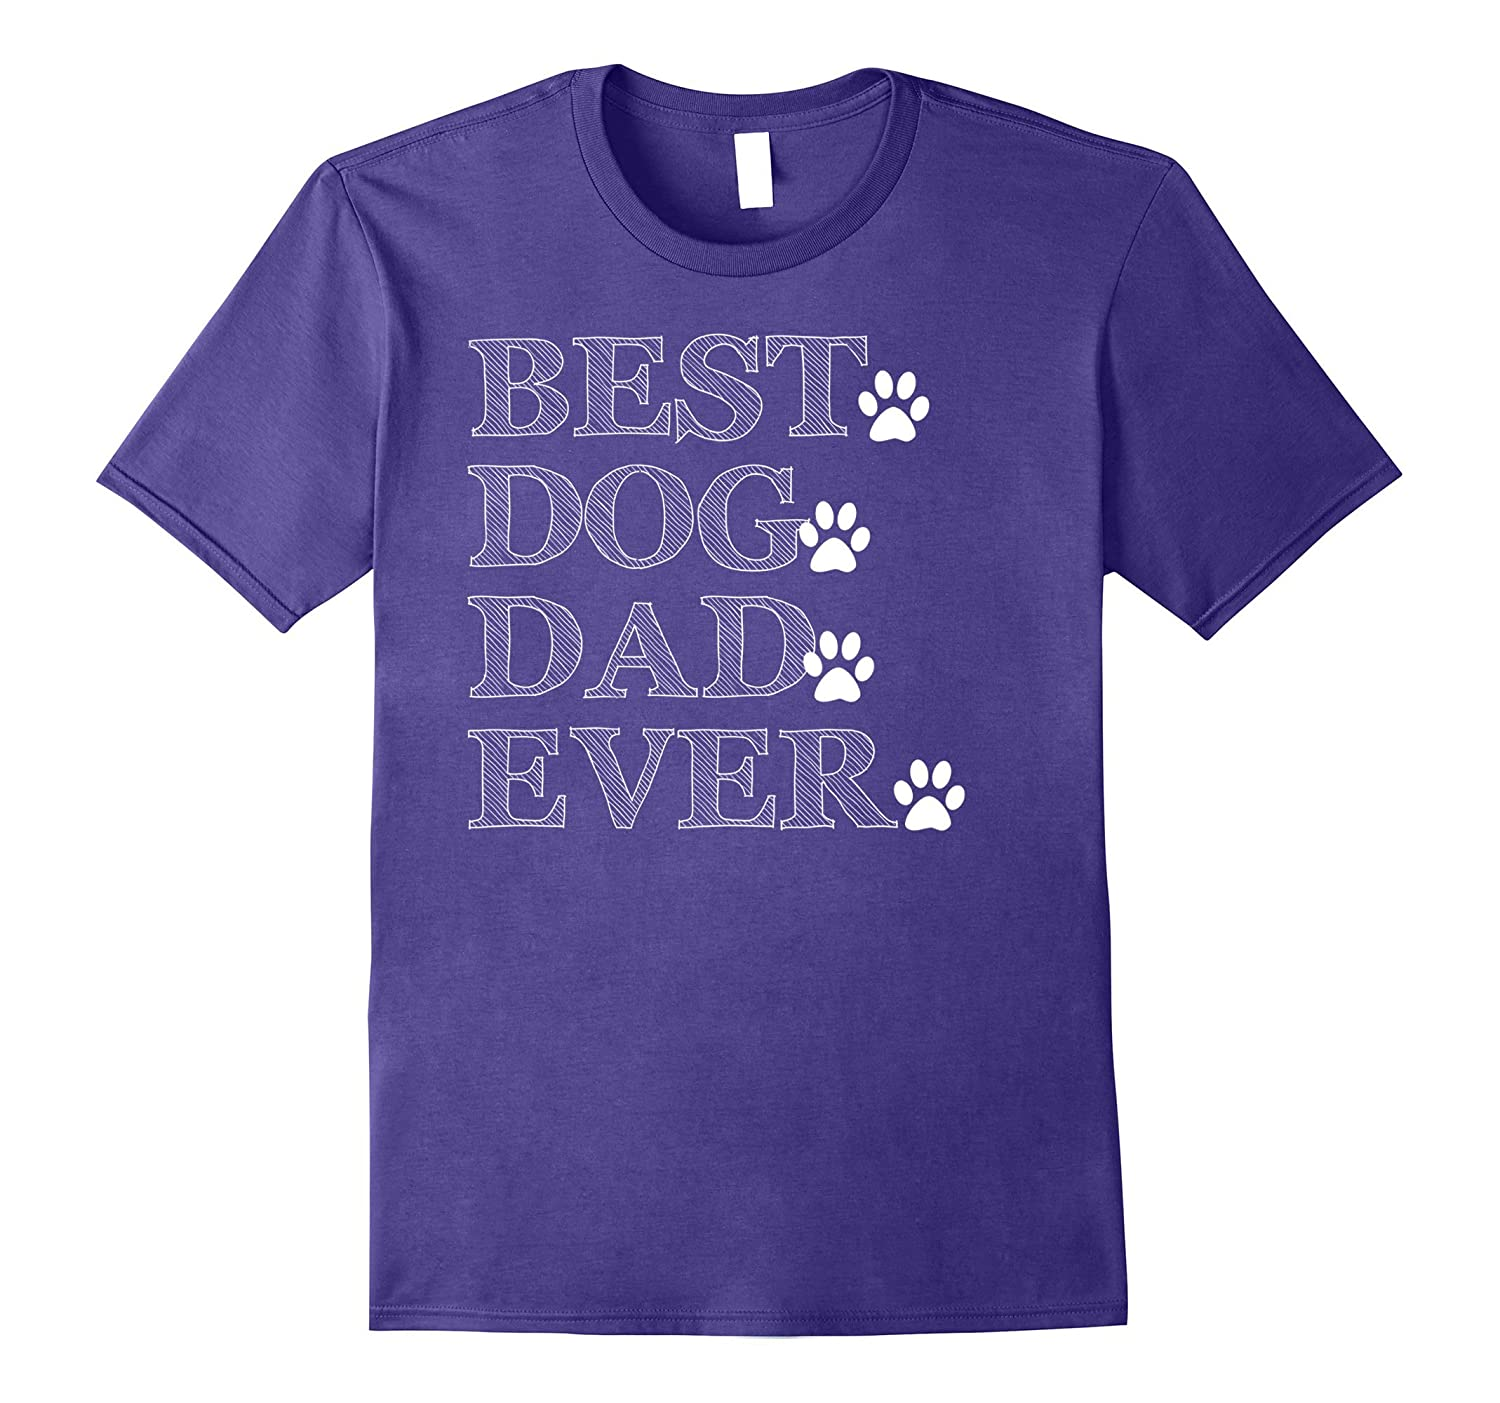 Best dog dad ever T shirt fathers day gift